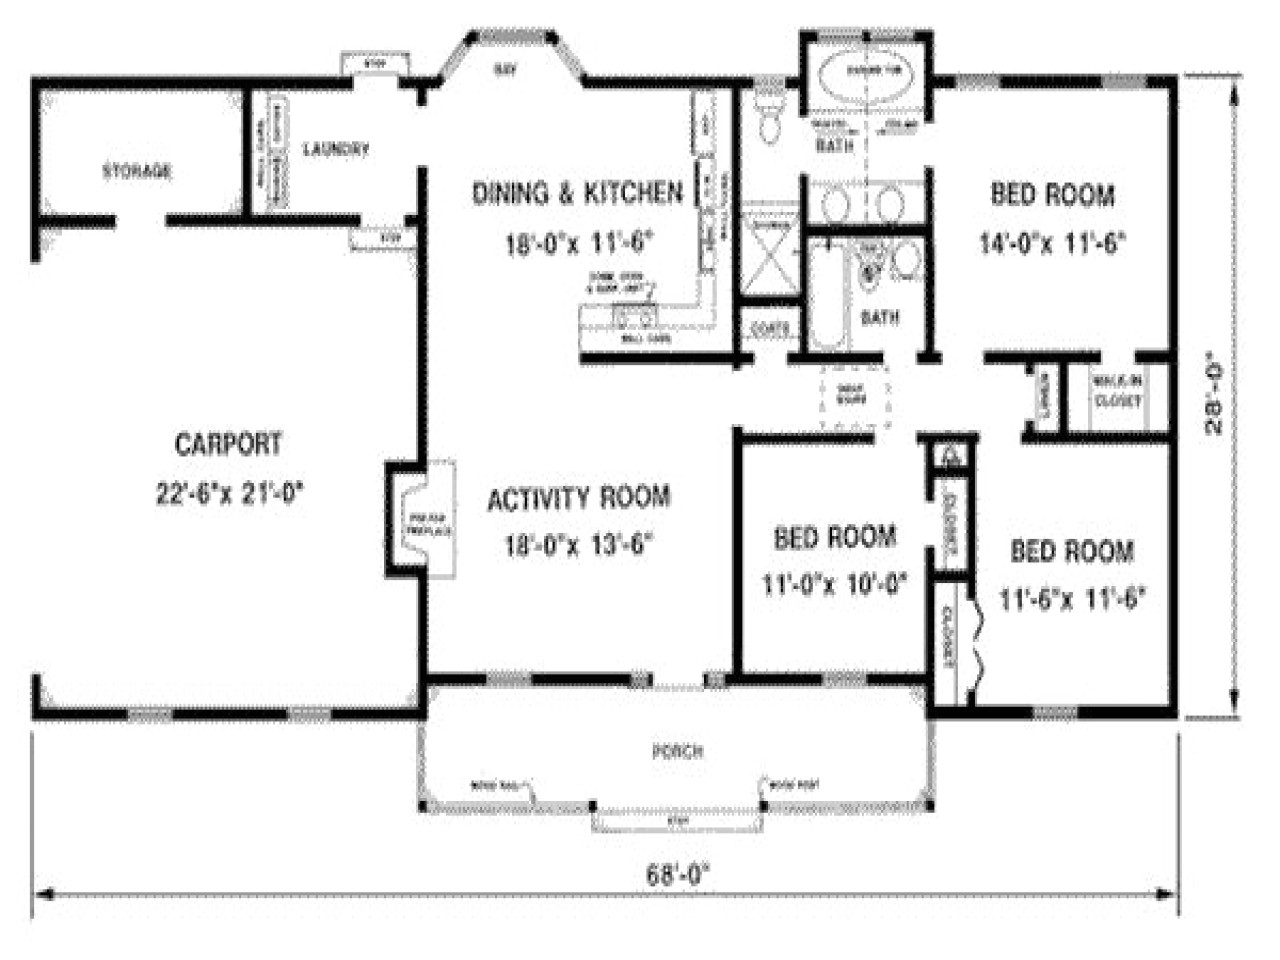 1300 Sq Ft Home Plans 1300 Square Foot House Plans 1300 Sq Ft House with Porch